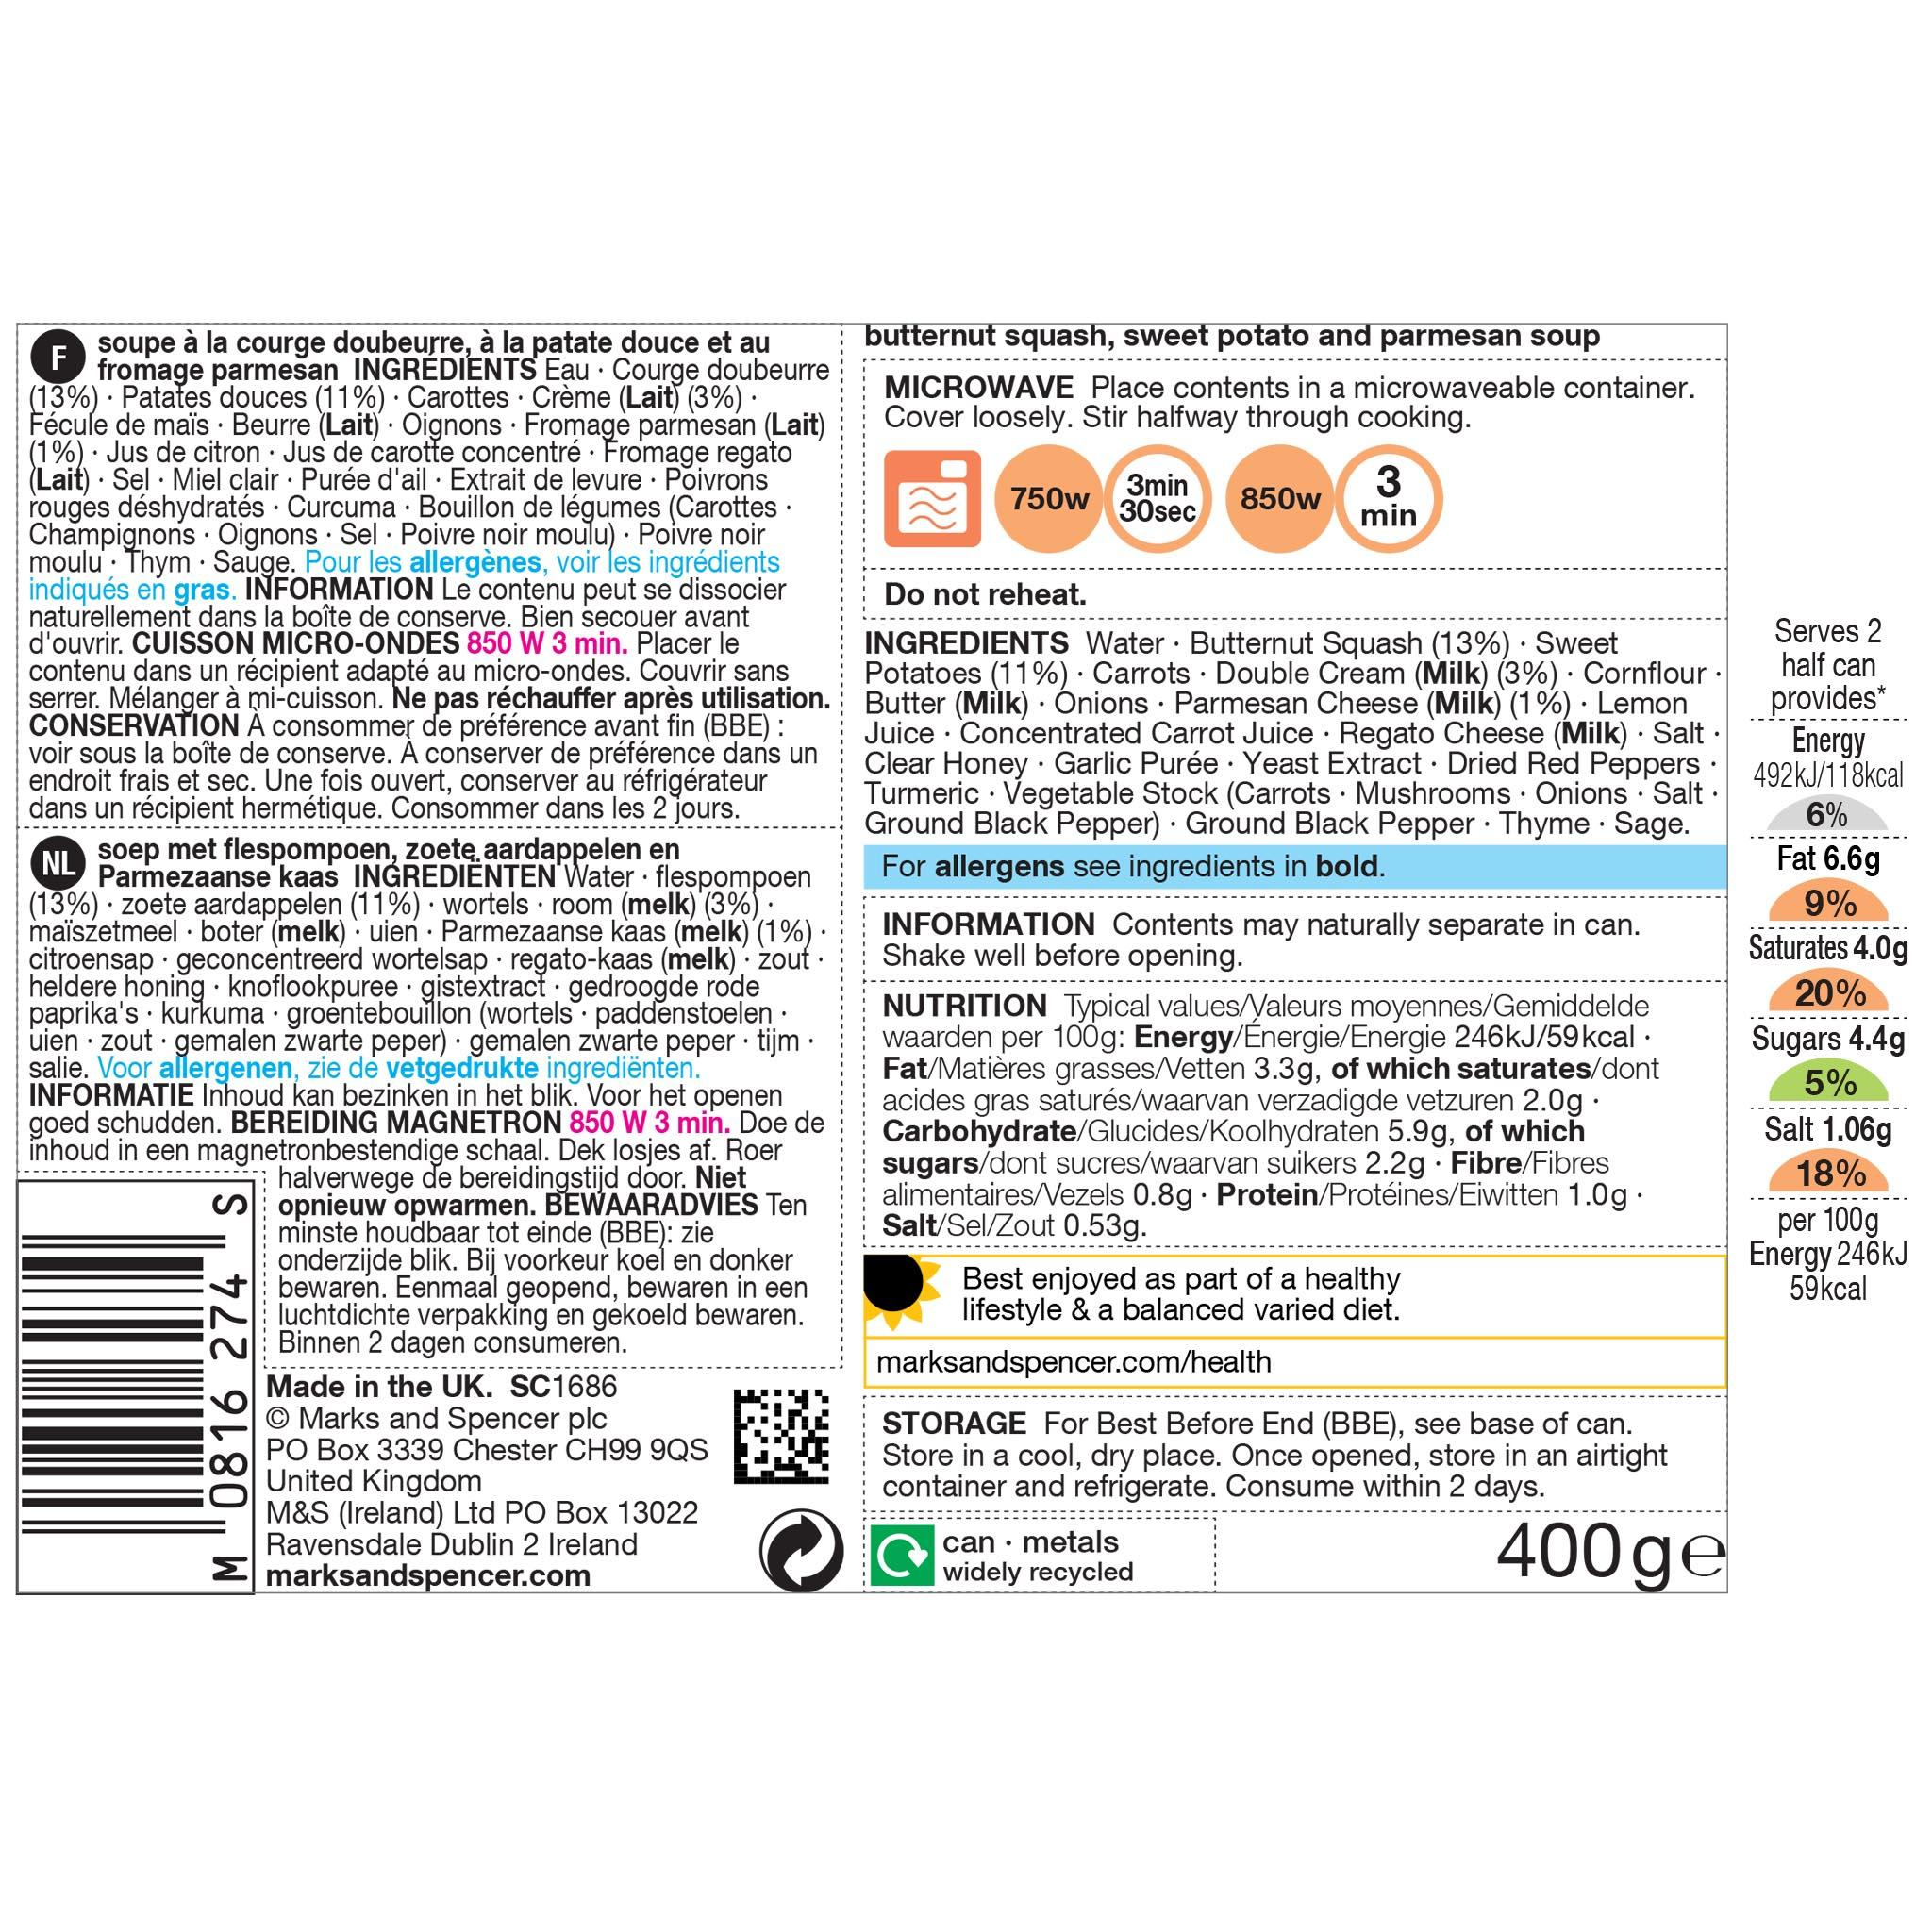 Butternut Squash & Sweet Potato Soup 400g Label